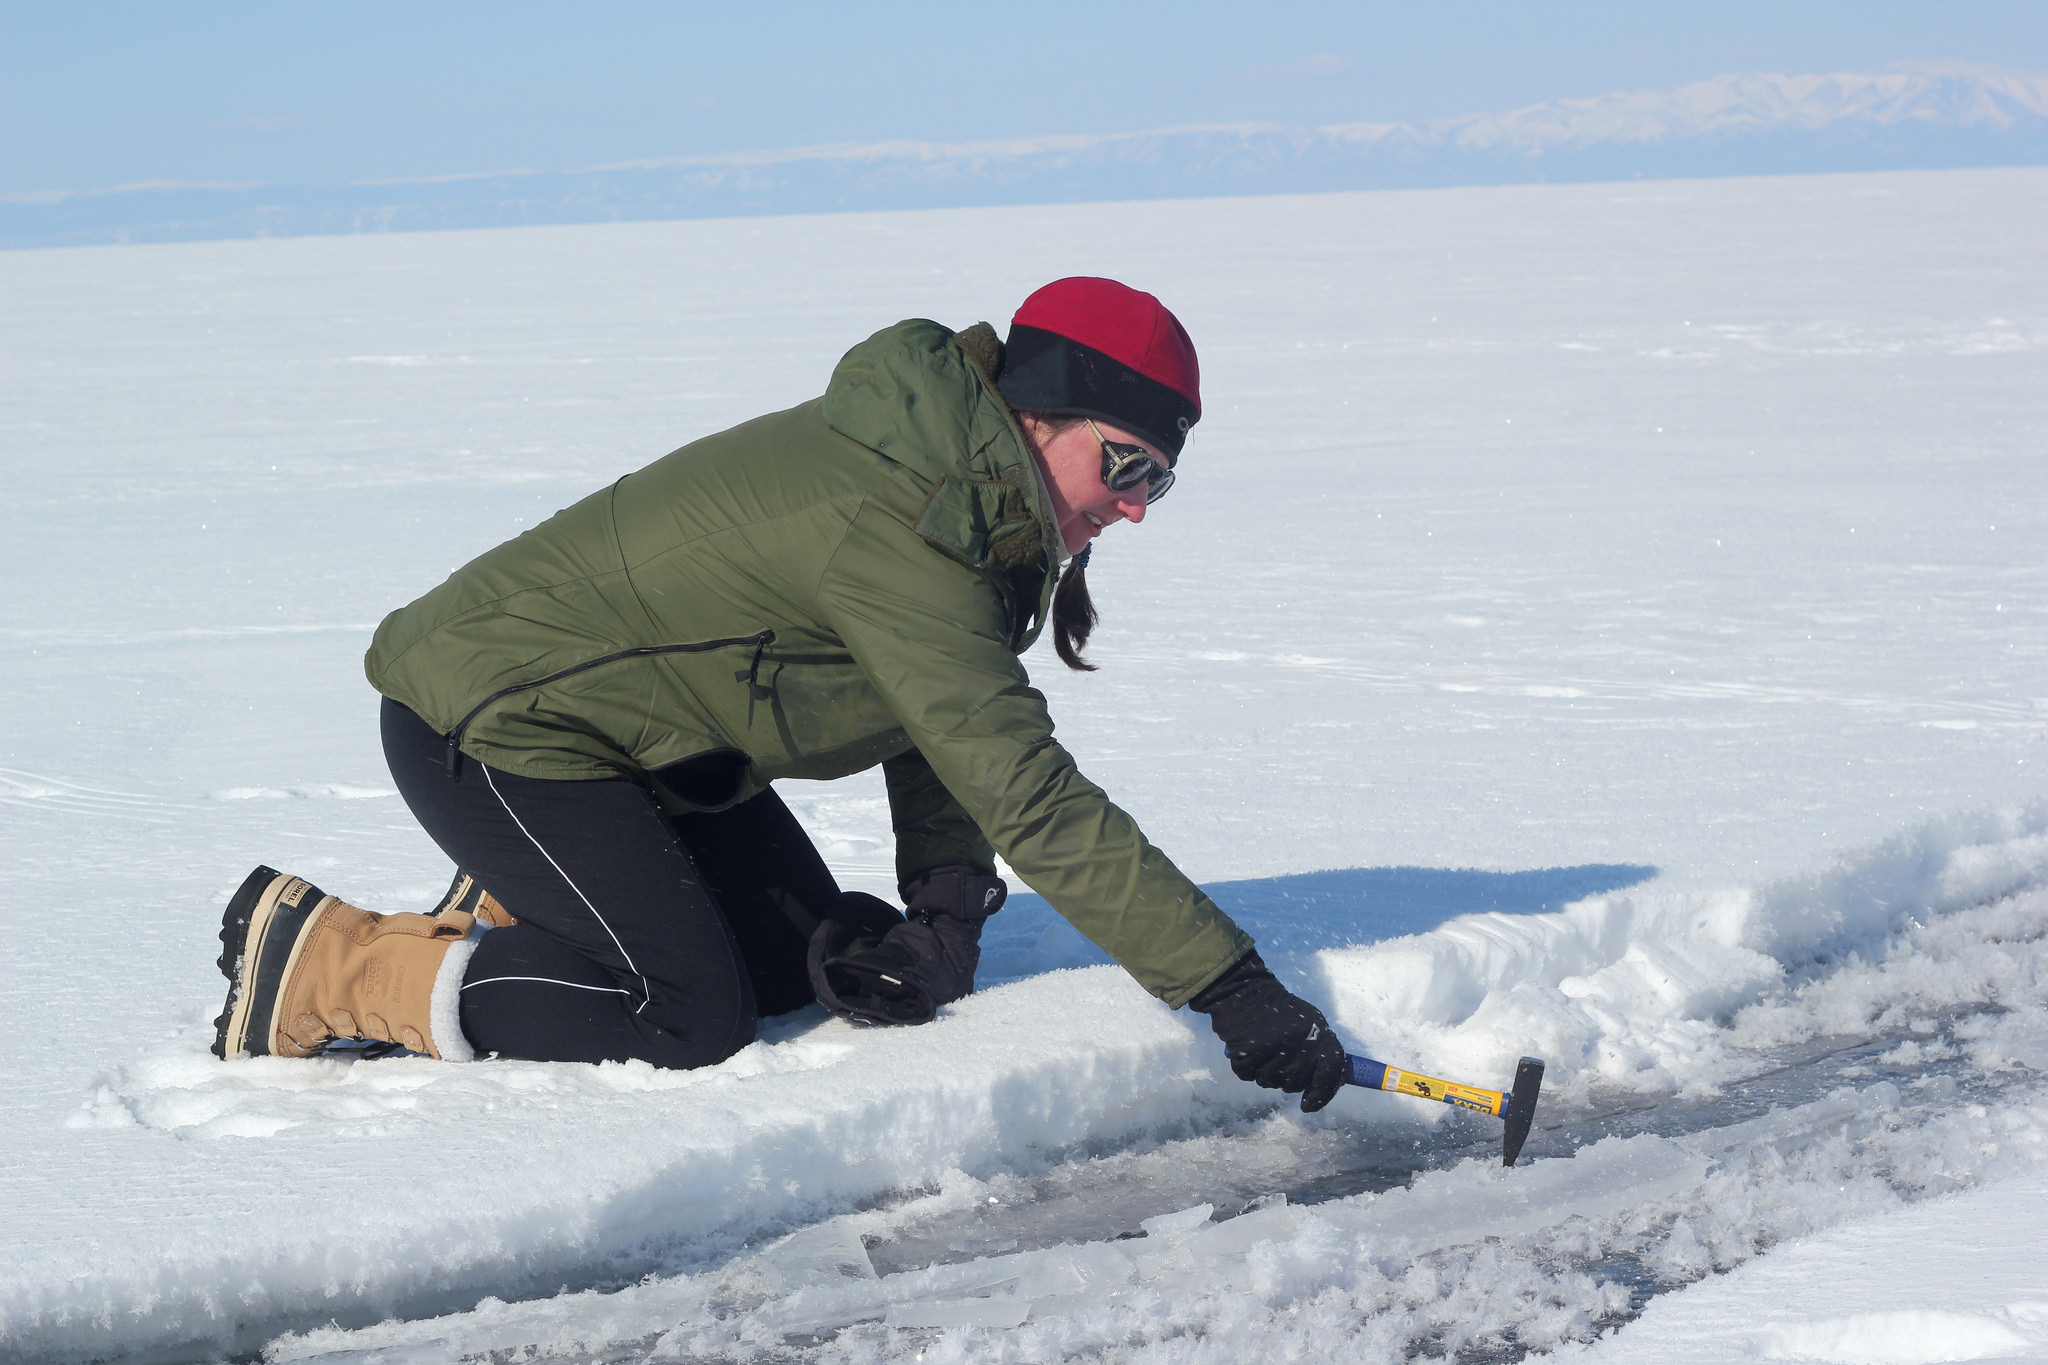 Laura is hammering the ice to get some fresh water to drink